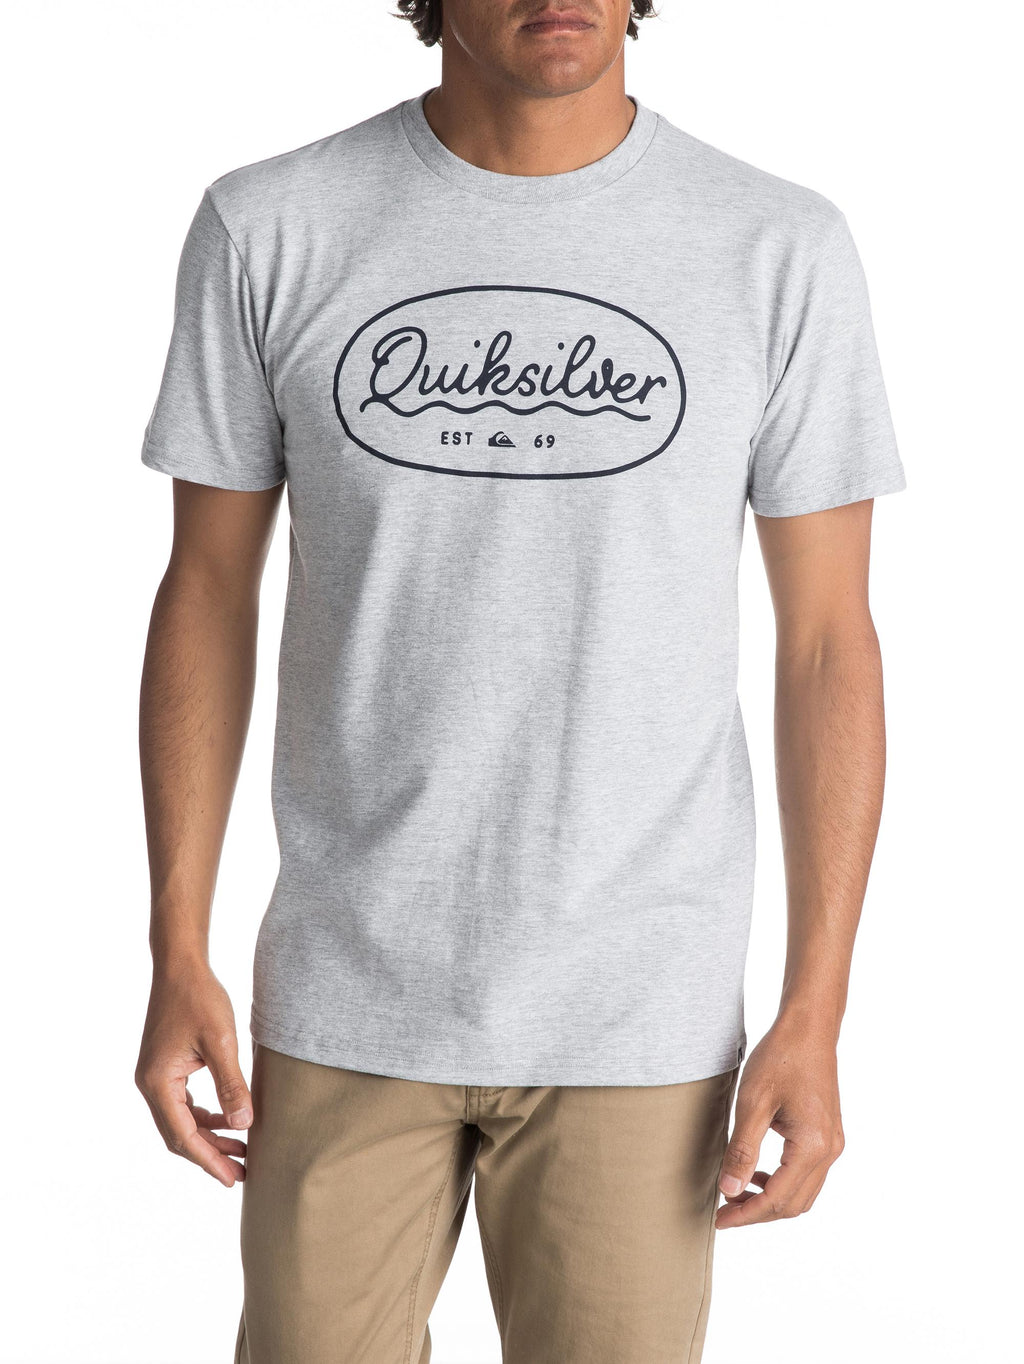 Quiksilver Simple Times Tee - Men's